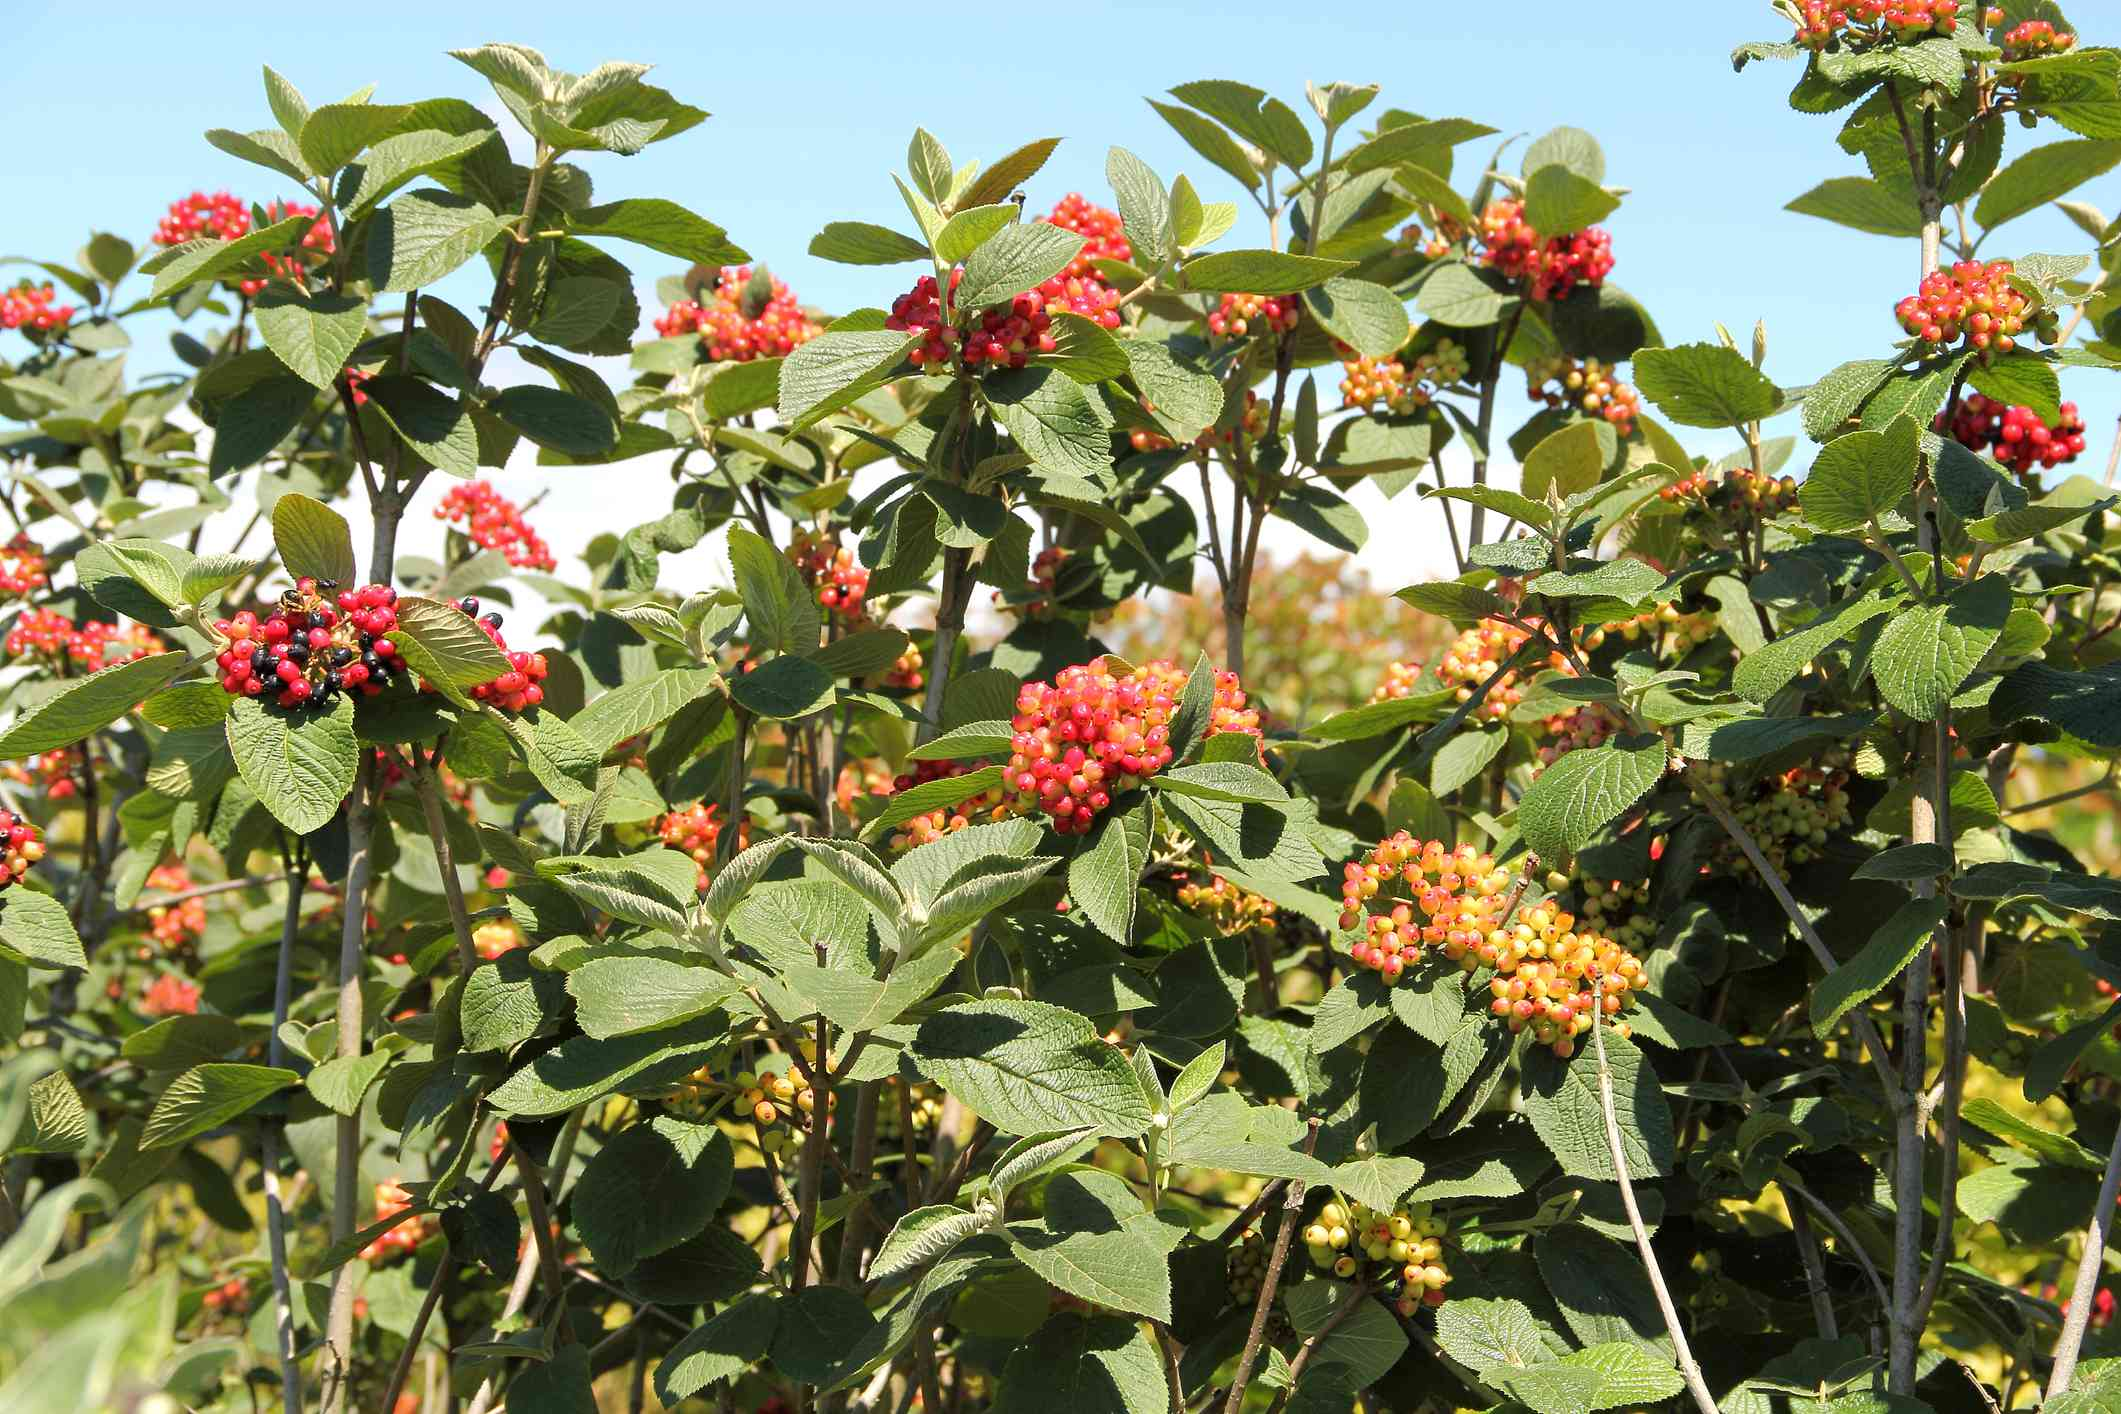 dogwood plant filled with red berries